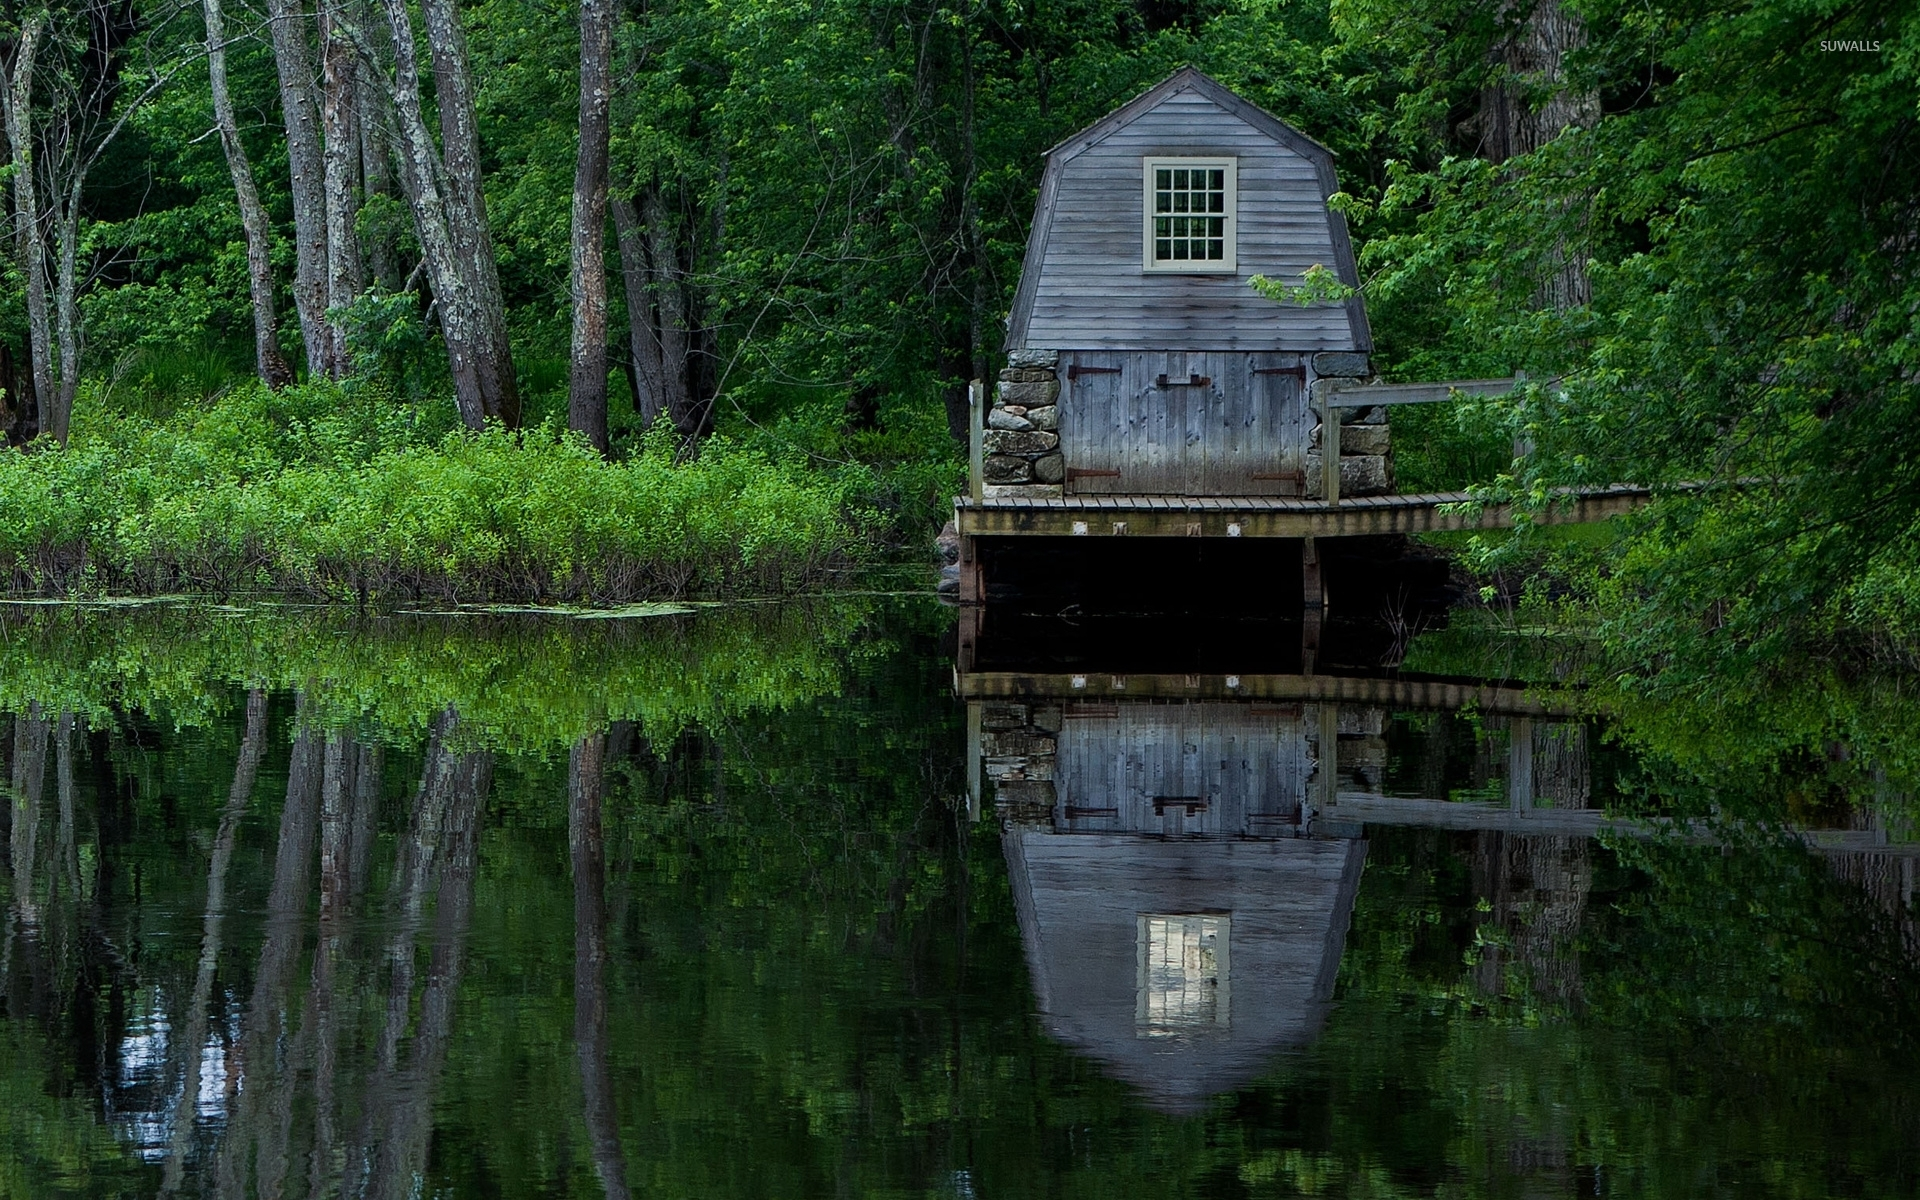 Wooden-Boat-Garage-On-The-Lake-51567-1920×1200-Wallpaper